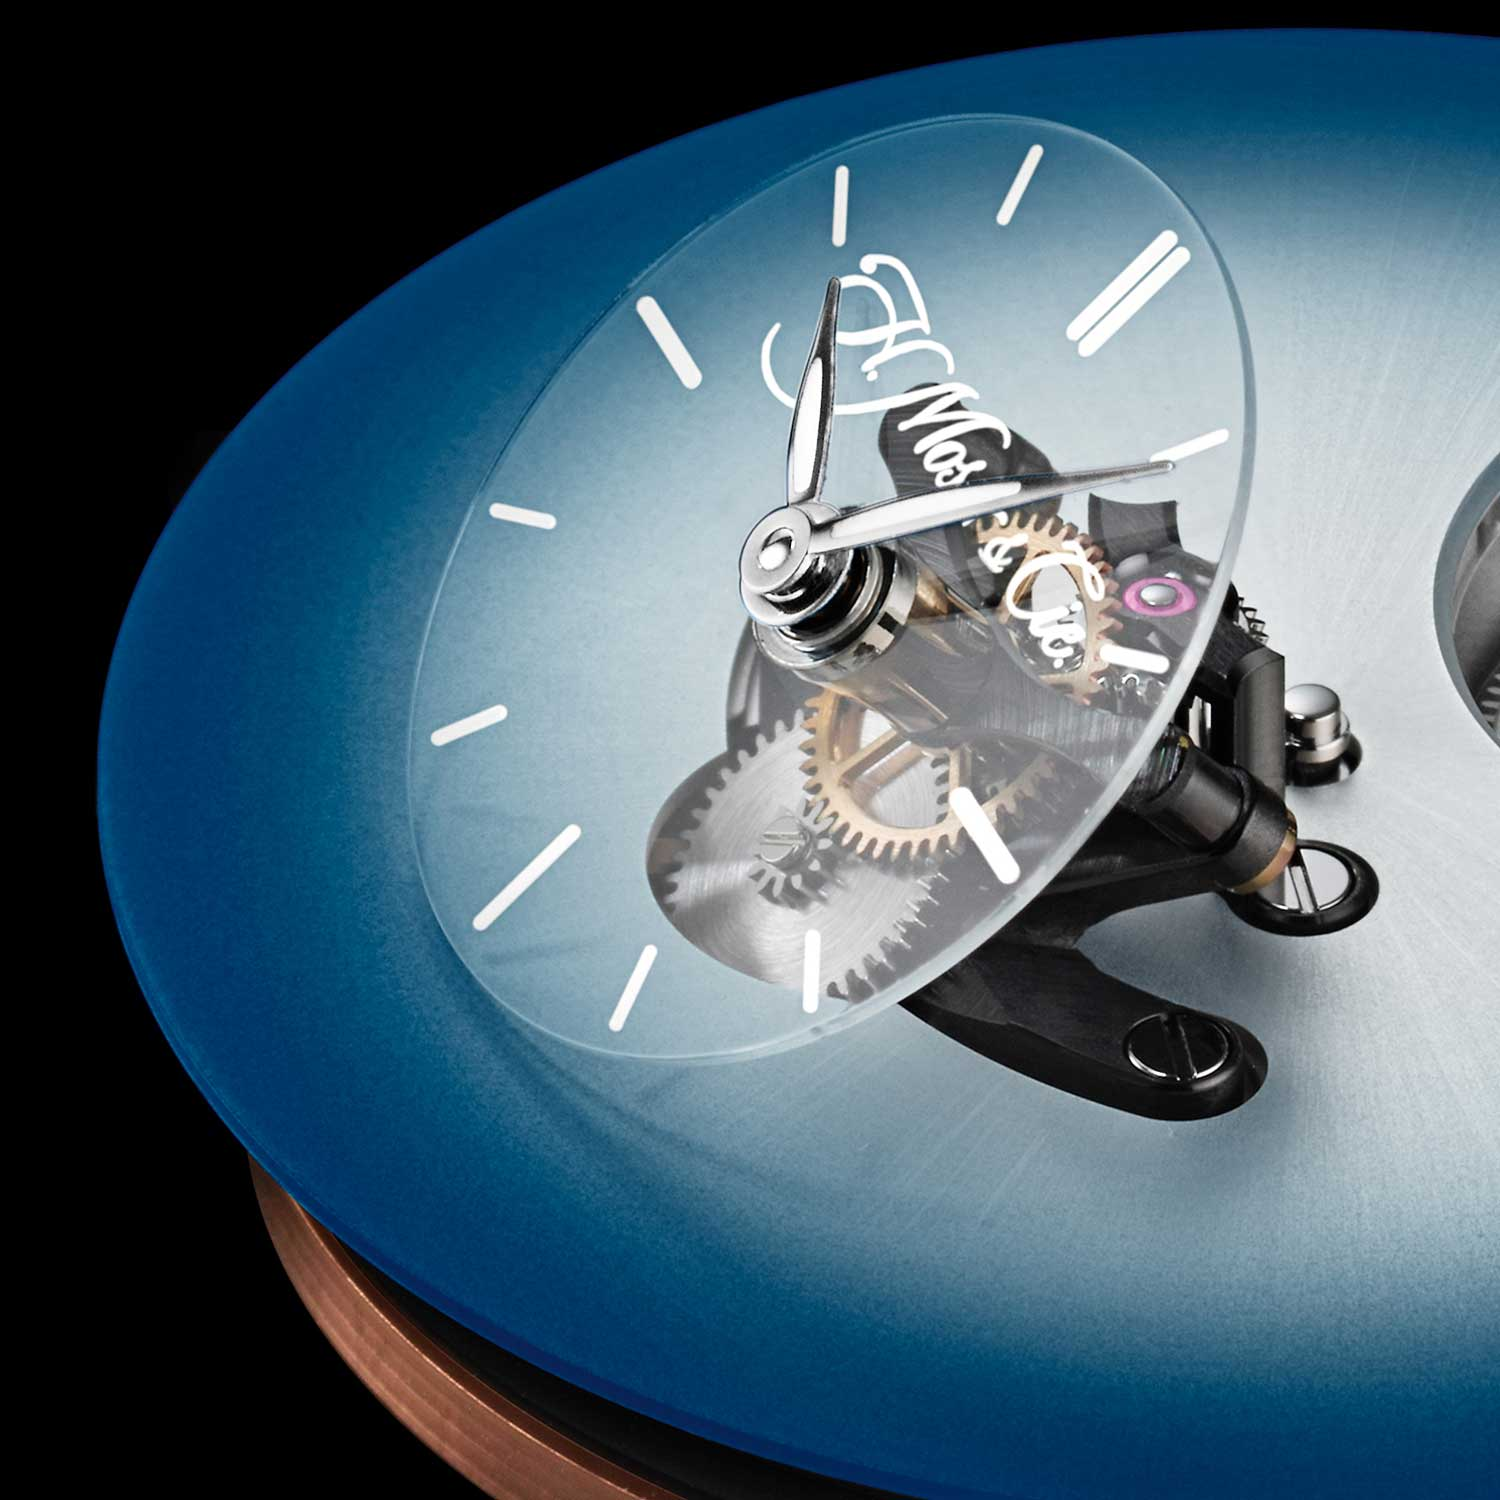 Angled sapphire subdial on the MB&F × H. Moser Endeavour Cylindrical Tourbillon with the Funky Blue dial